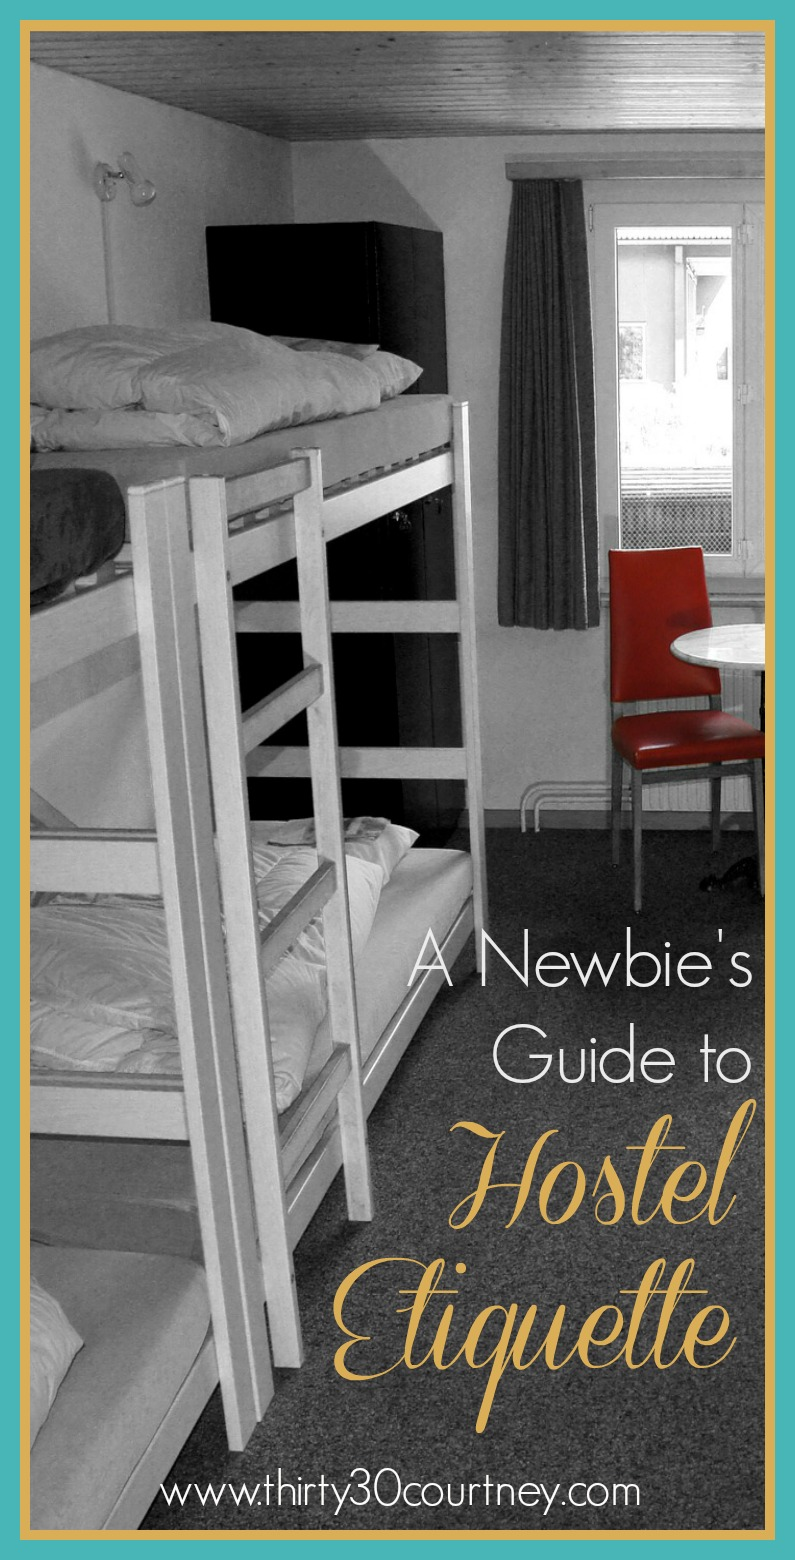 A Newbie's Guide to Hostel Etiquette